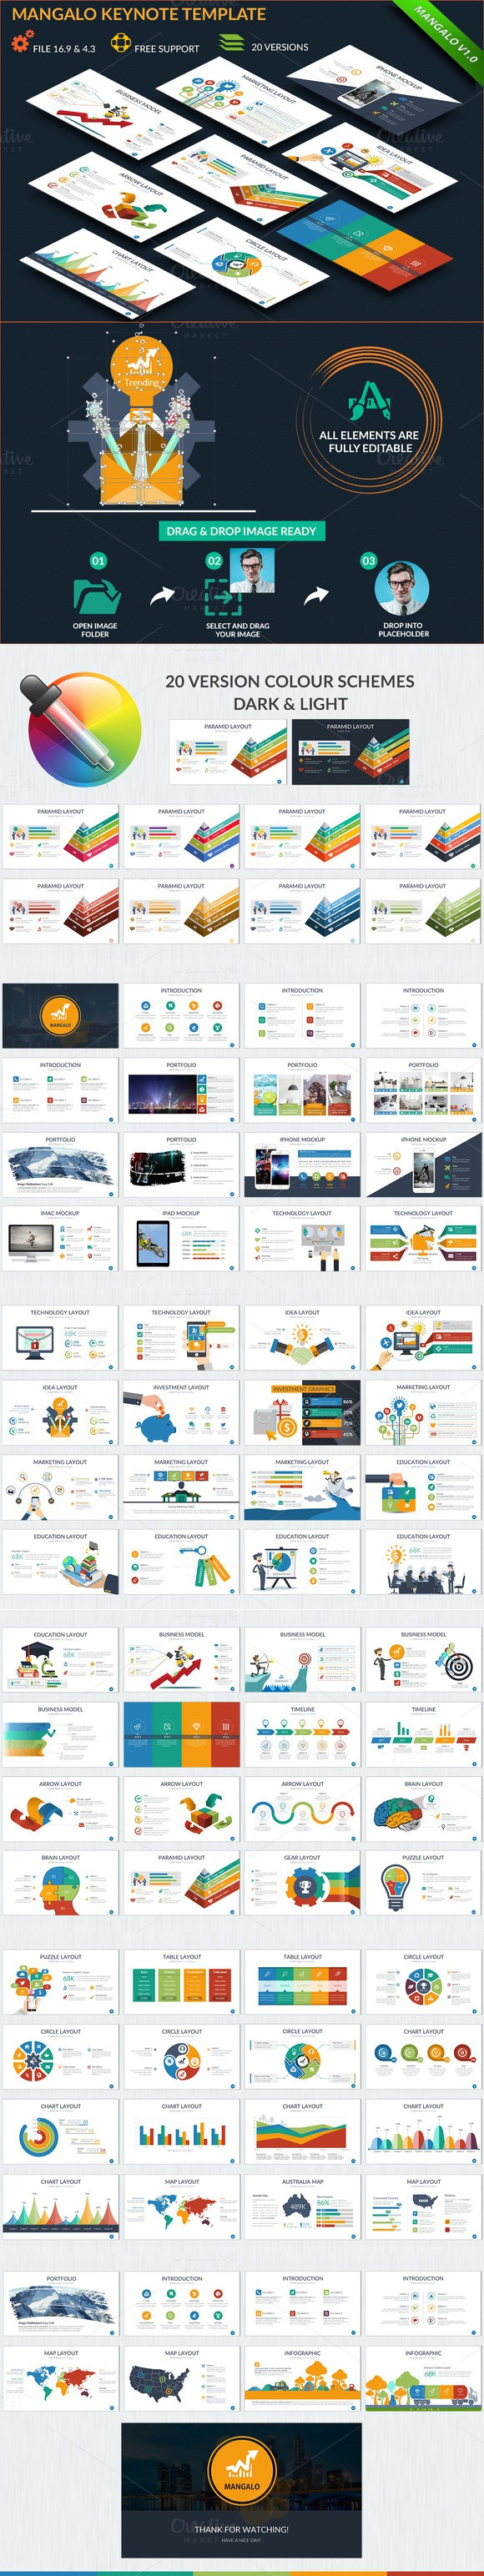 Mangalo Keynote Template. Business Infographic